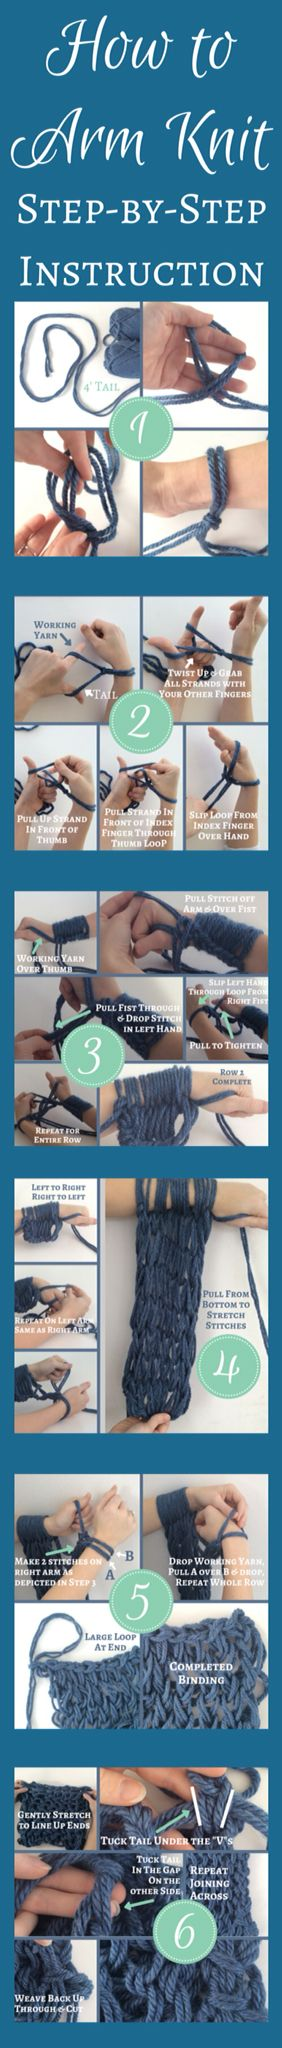 It's so easy to learn how to arm knit - just follow these instructions and you'll be hooked in no time